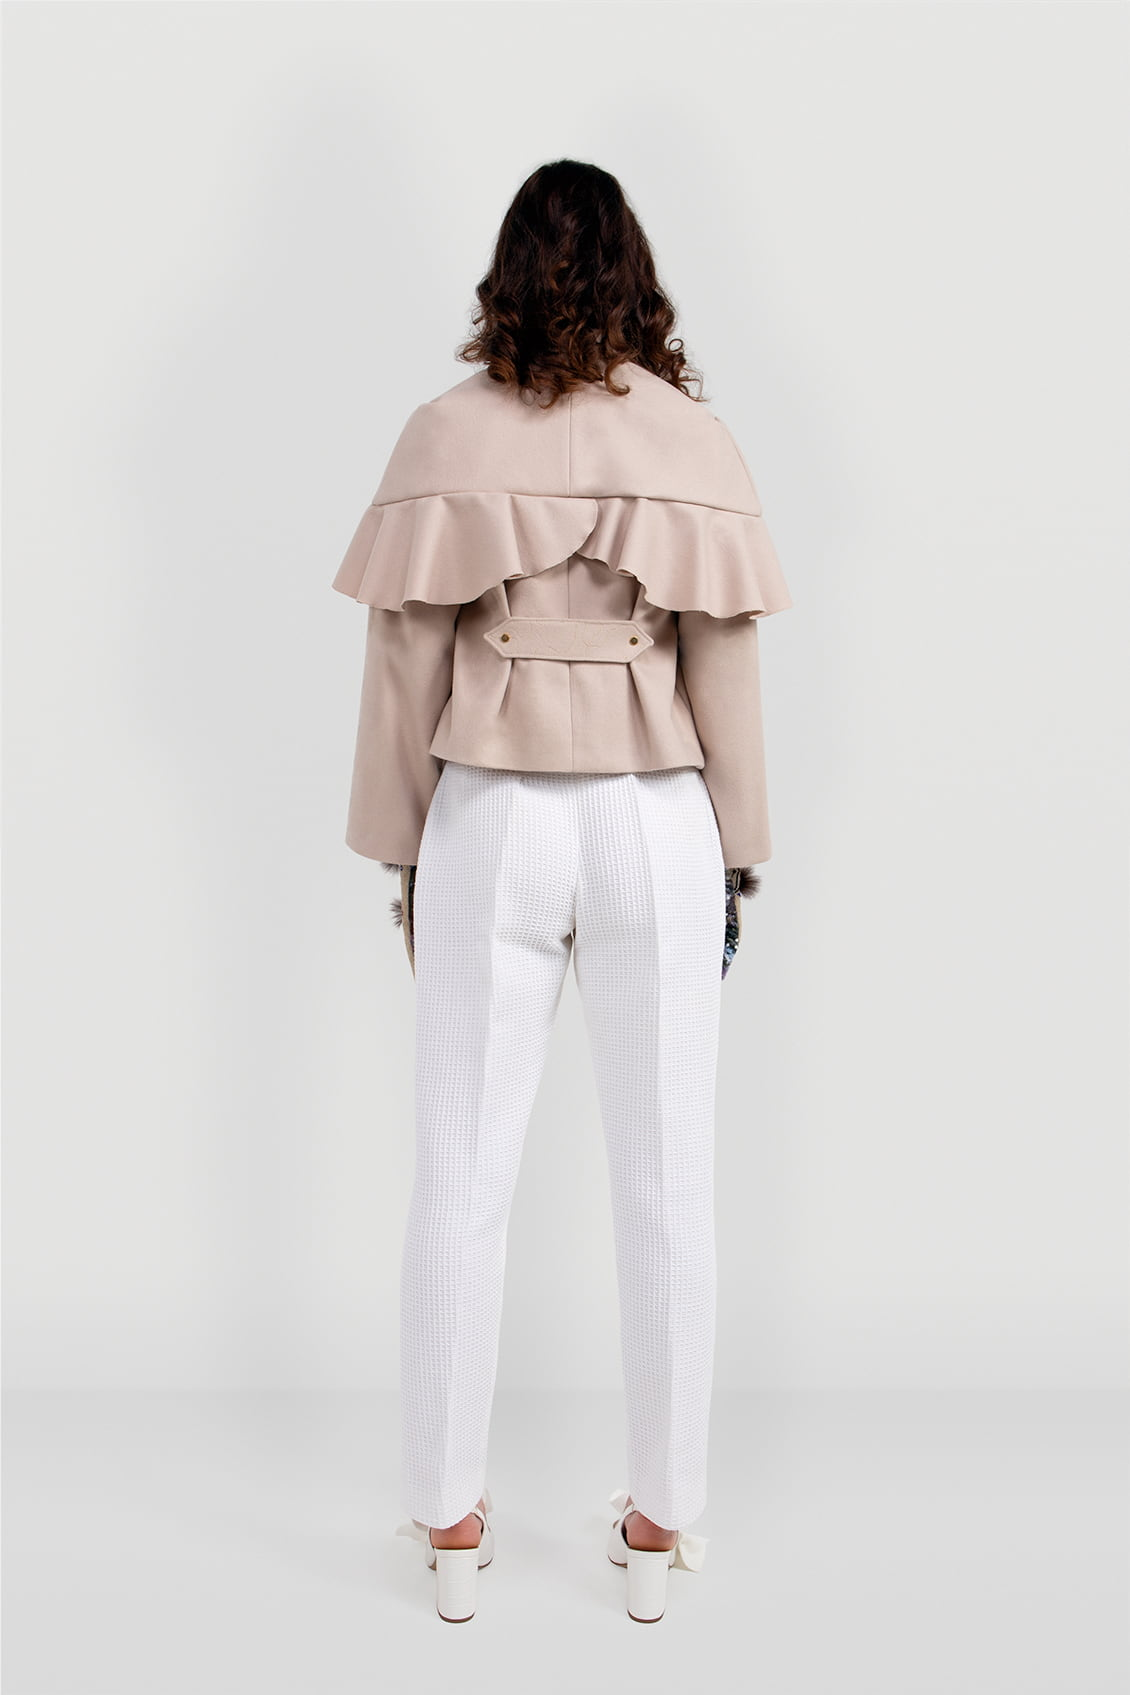 Back of the beige wool women's coat AUDREY. Hip-length single-breasted coat with attachable cape detail. Designer garment made in the UK.